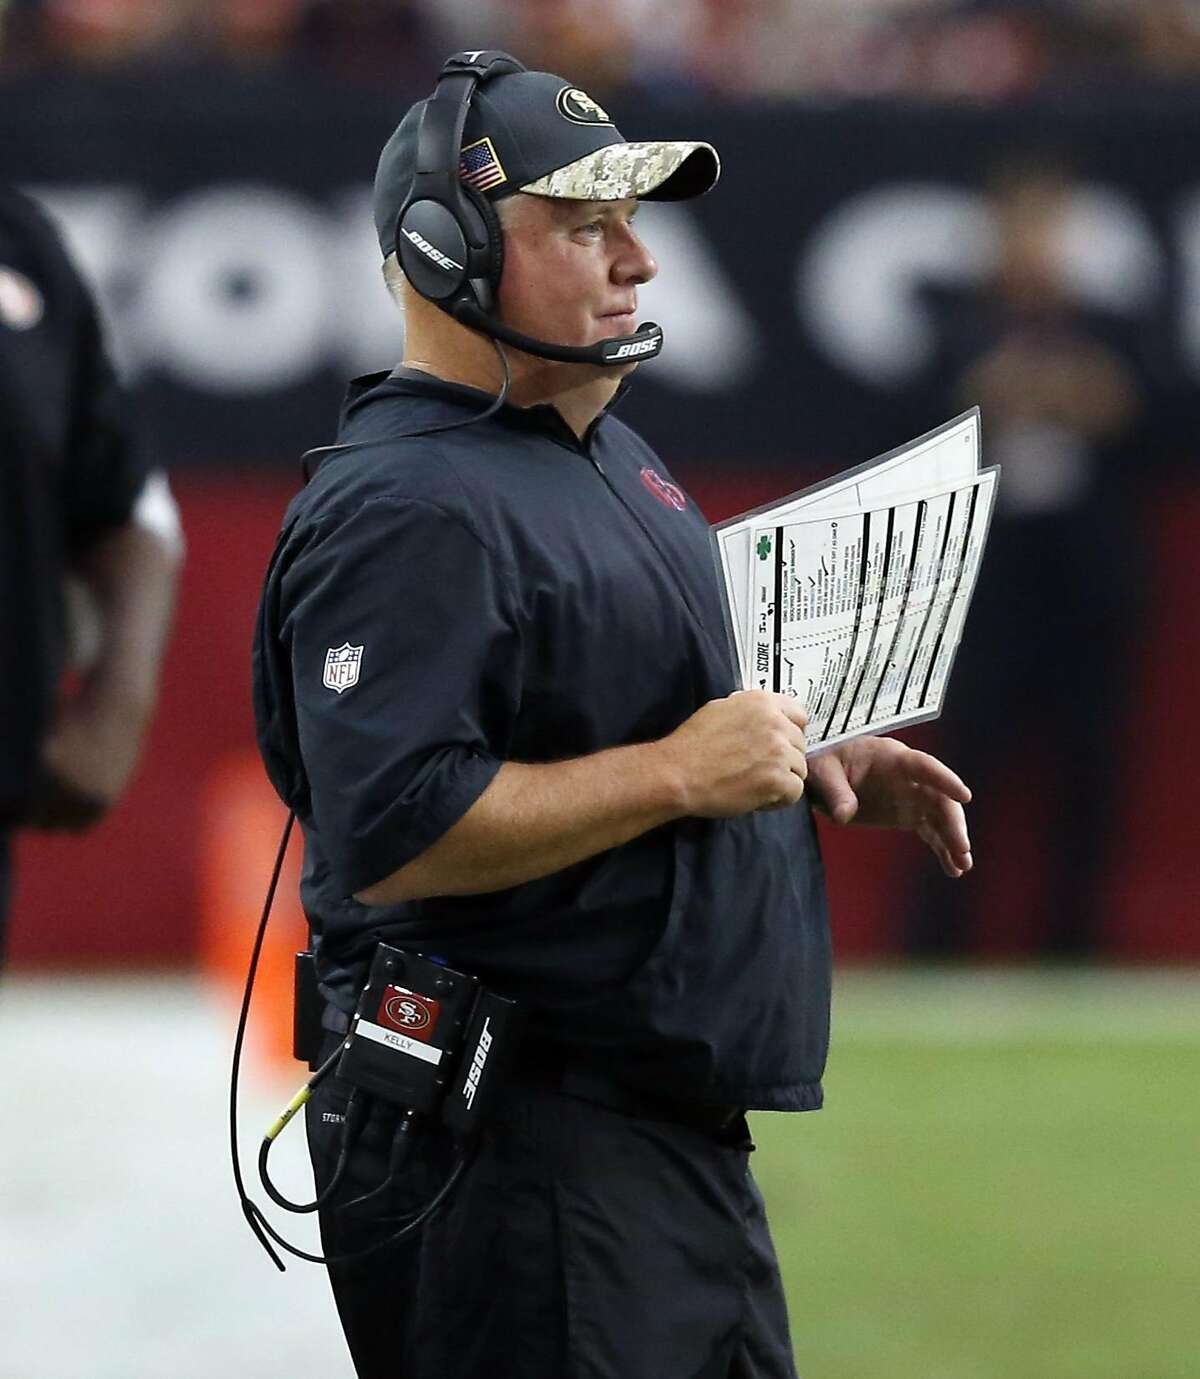 San Francisco 49ers head coach Chip Kelly watches during the first half of an NFL football game against the Arizona Cardinals, Sunday, Nov. 13, 2016, in Glendale, Ariz. (AP Photo/Ross D. Franklin)